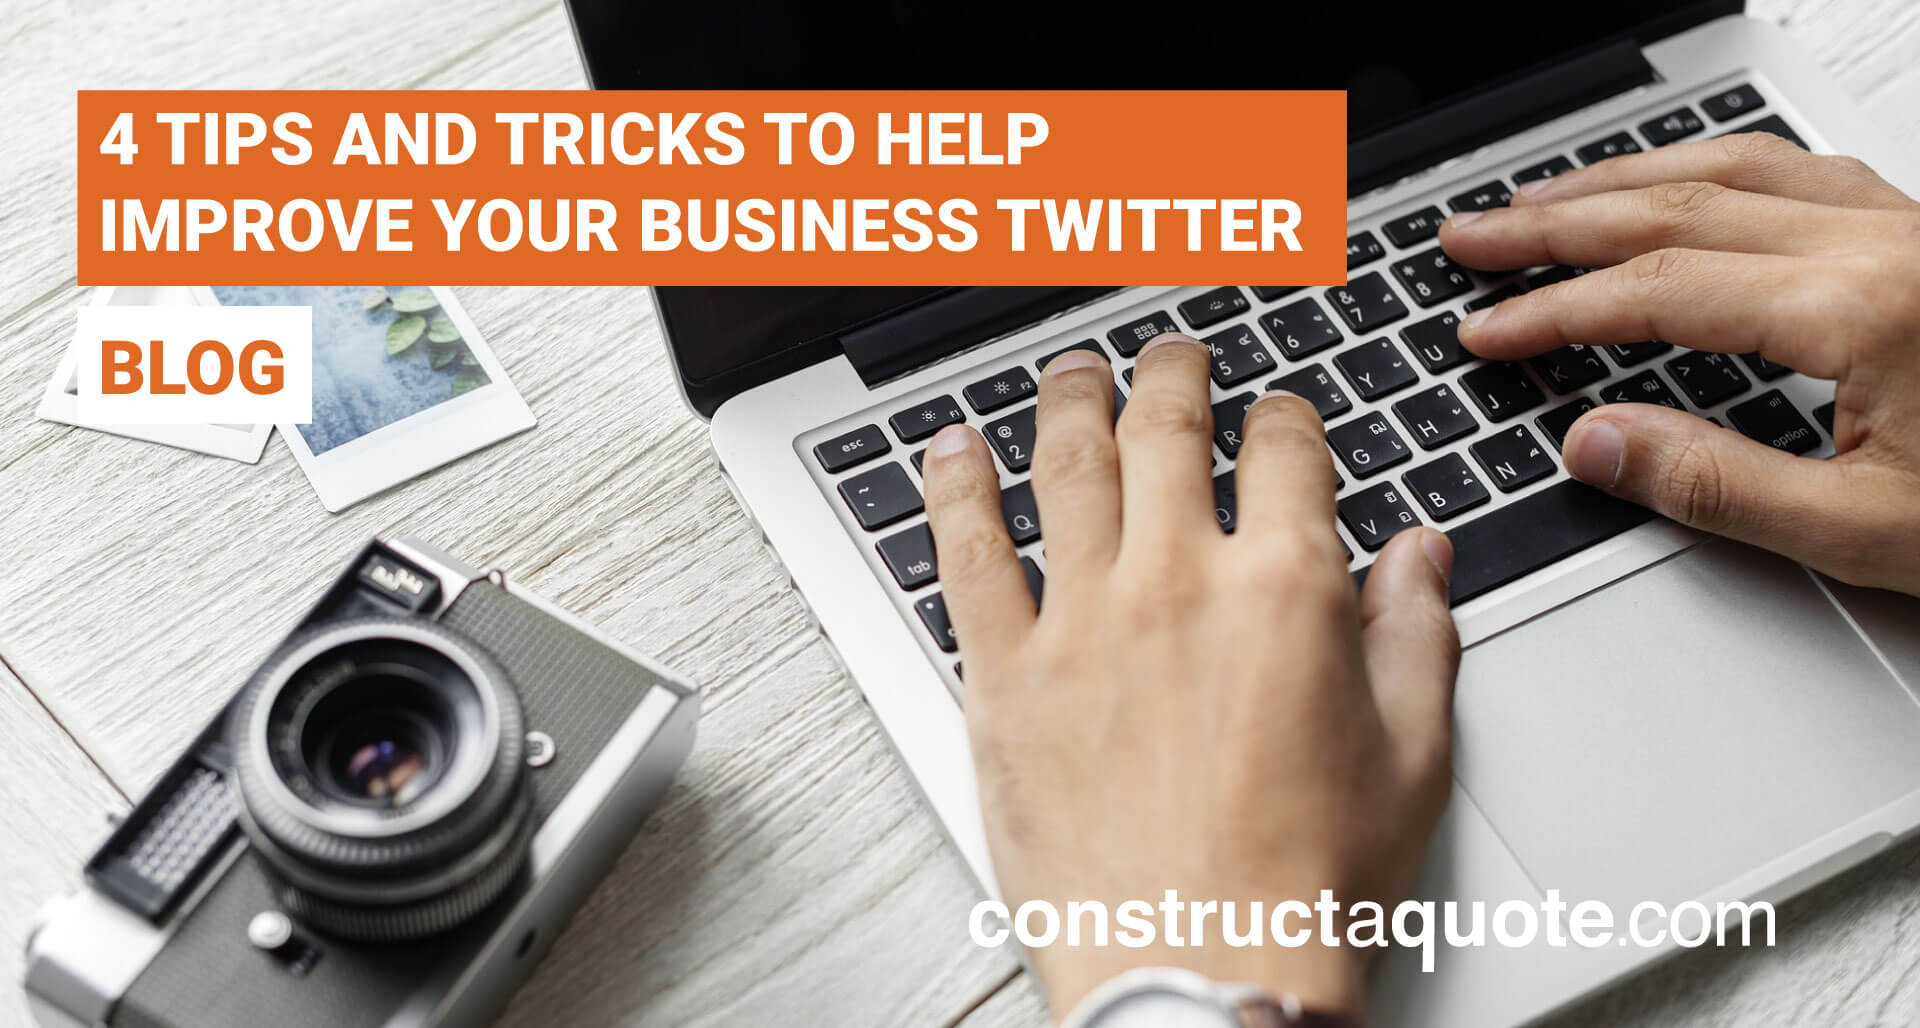 4 Tips And Tricks To Help Improve Your Business Twitter